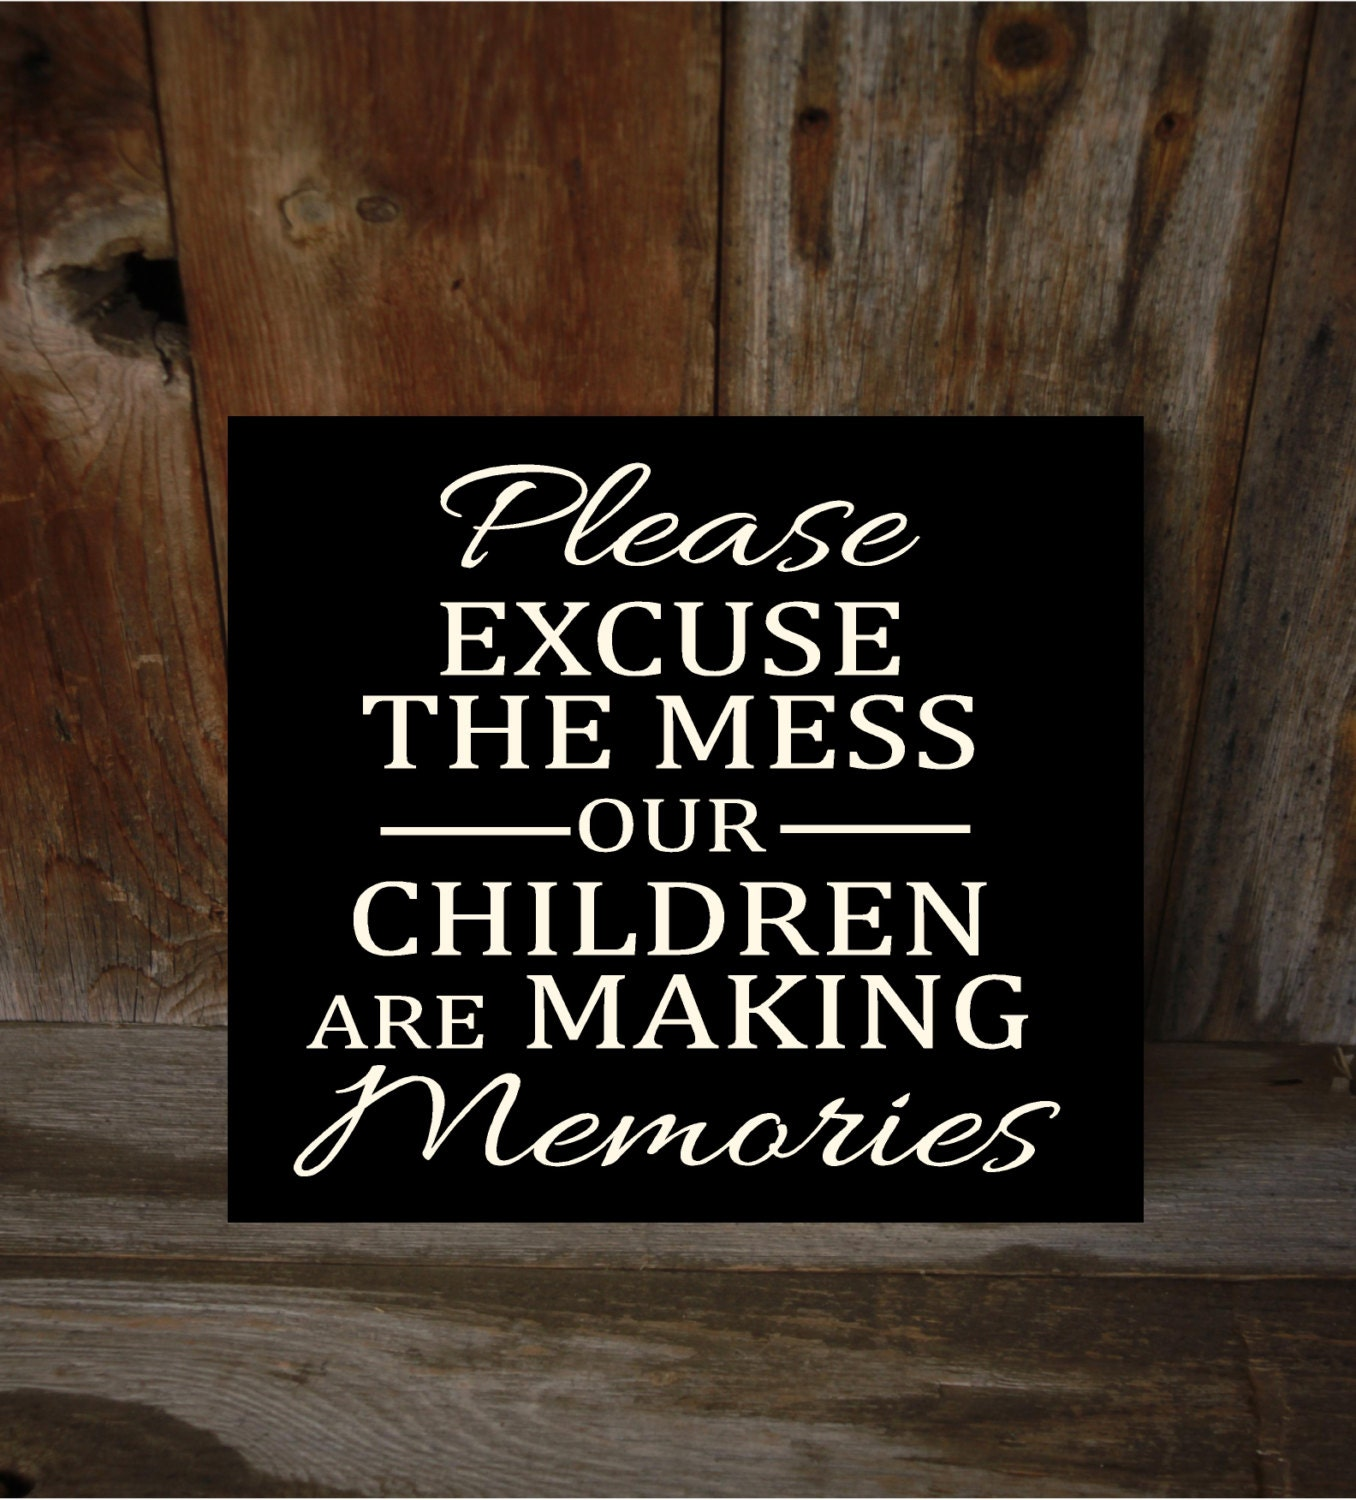 Please Excuse The Mess Our Children Are Making Memories Wood